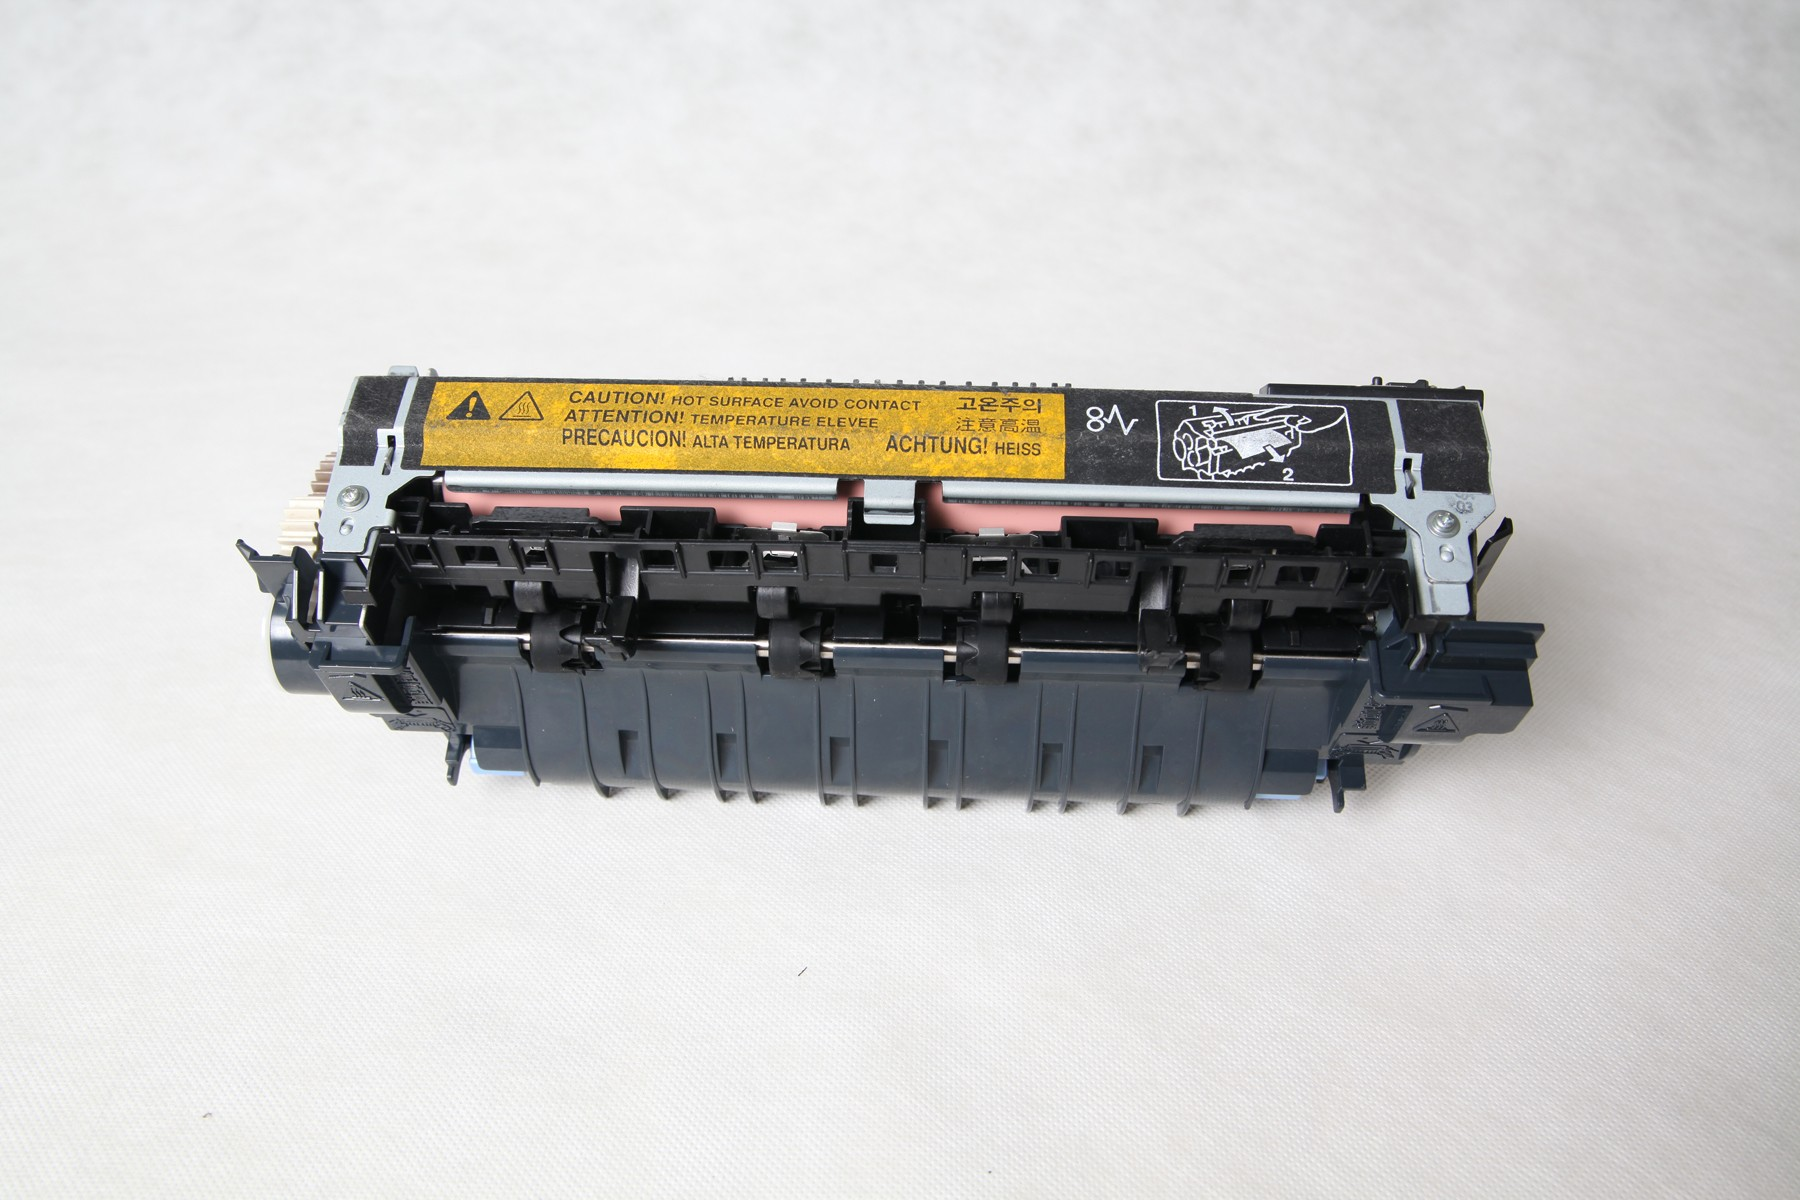 RM1-4554-000 | HP LaserJet P4015/P4515 Fuser Assembly Refurbished Exchange